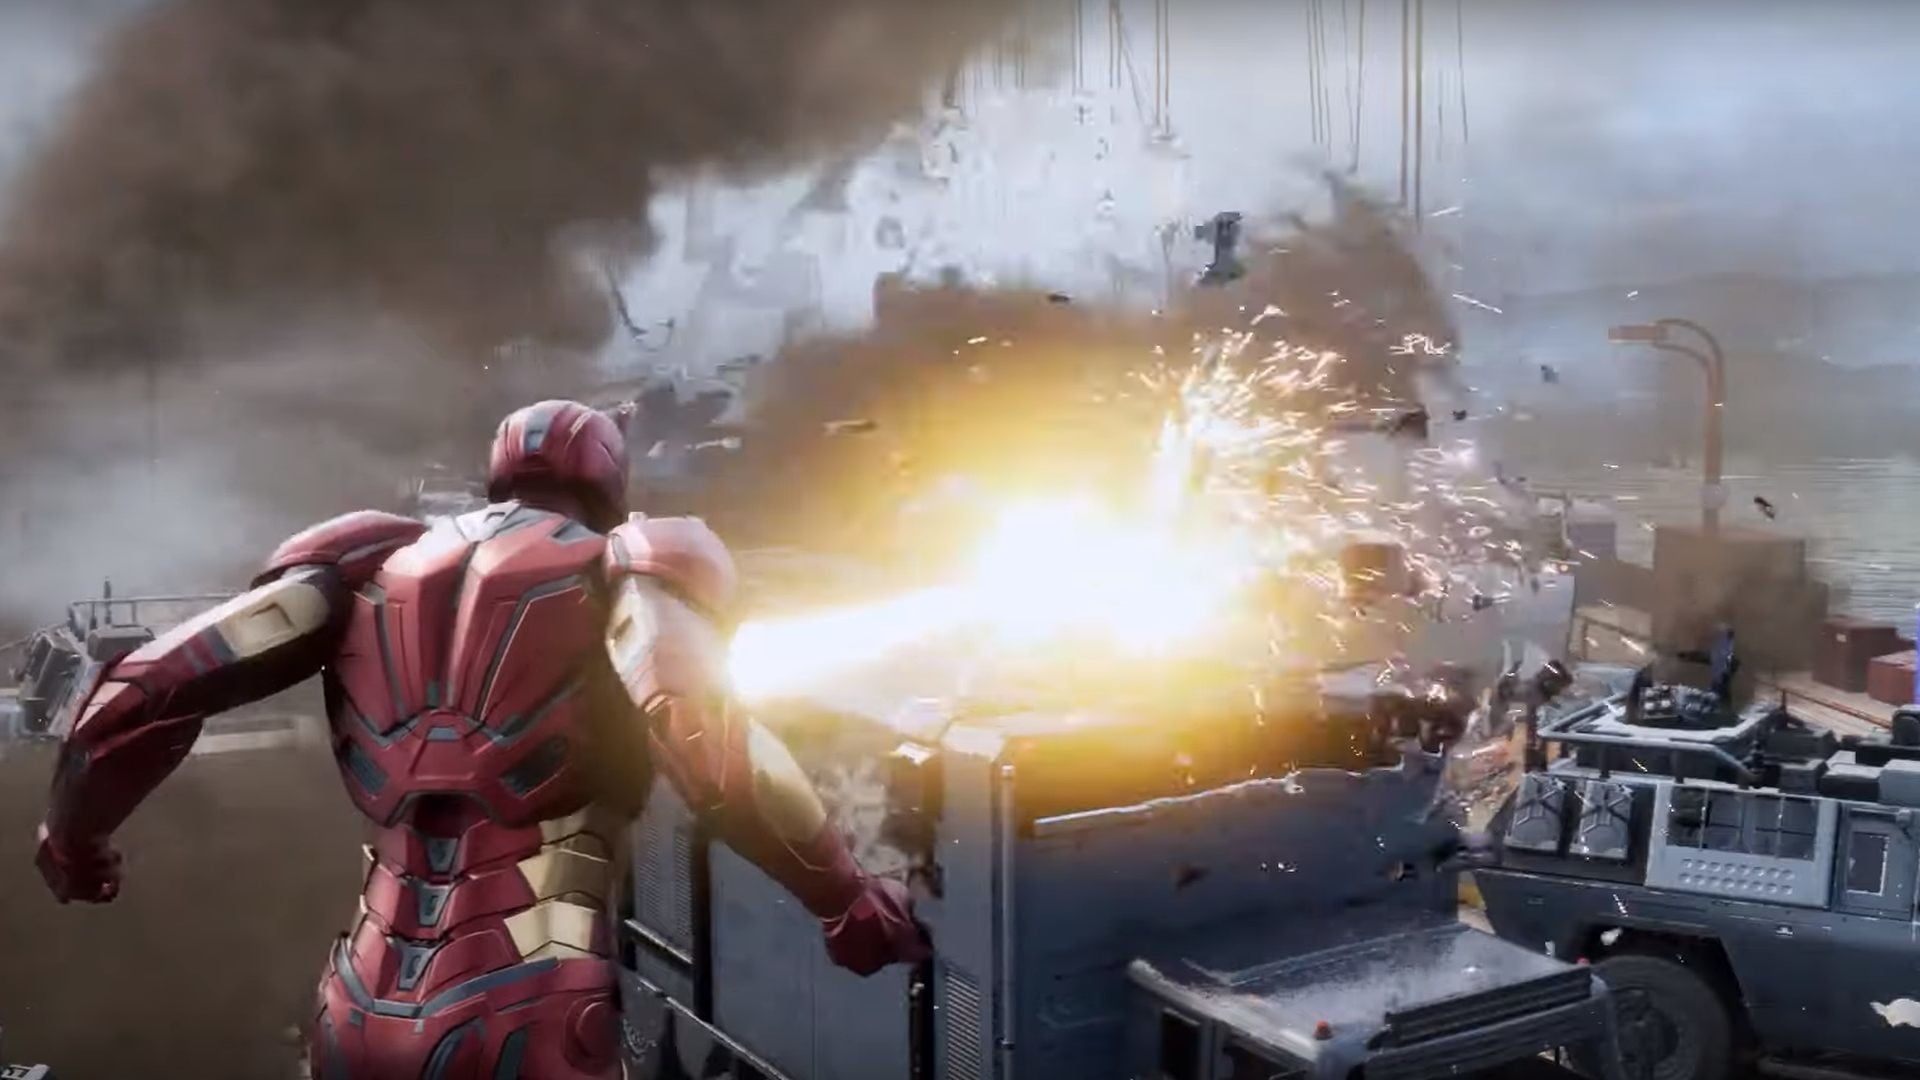 marvels-avengers-square-enix-crystal-dynamics-e3-2019-reveal-multiplayer-co-op-post-launch-re